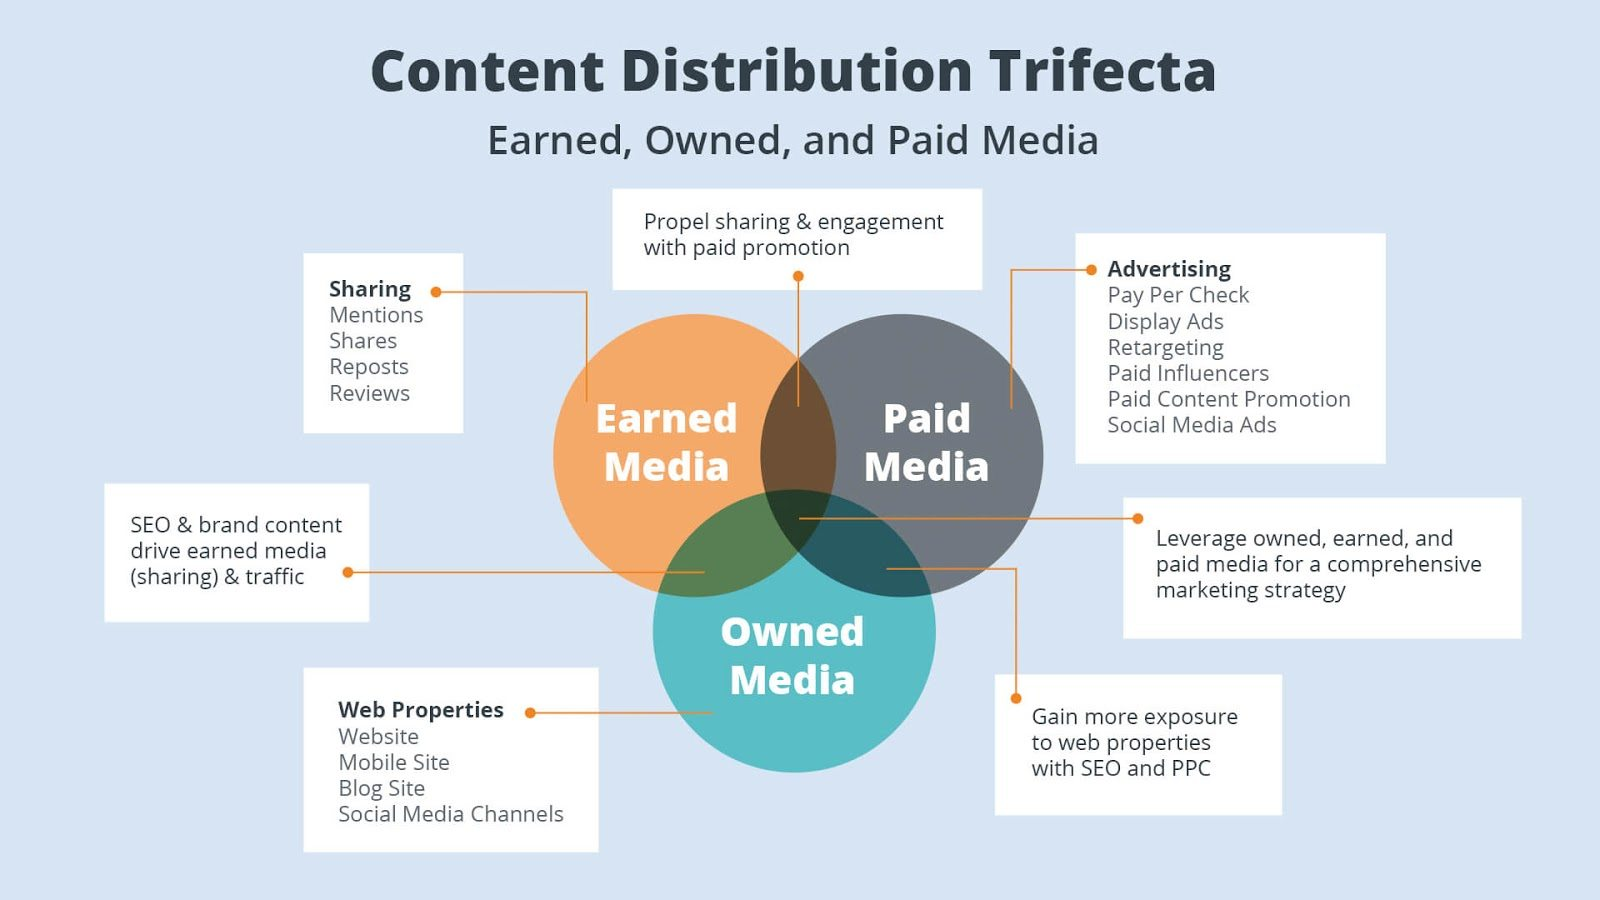 Content Distribution Trifecta. Source  Instapage